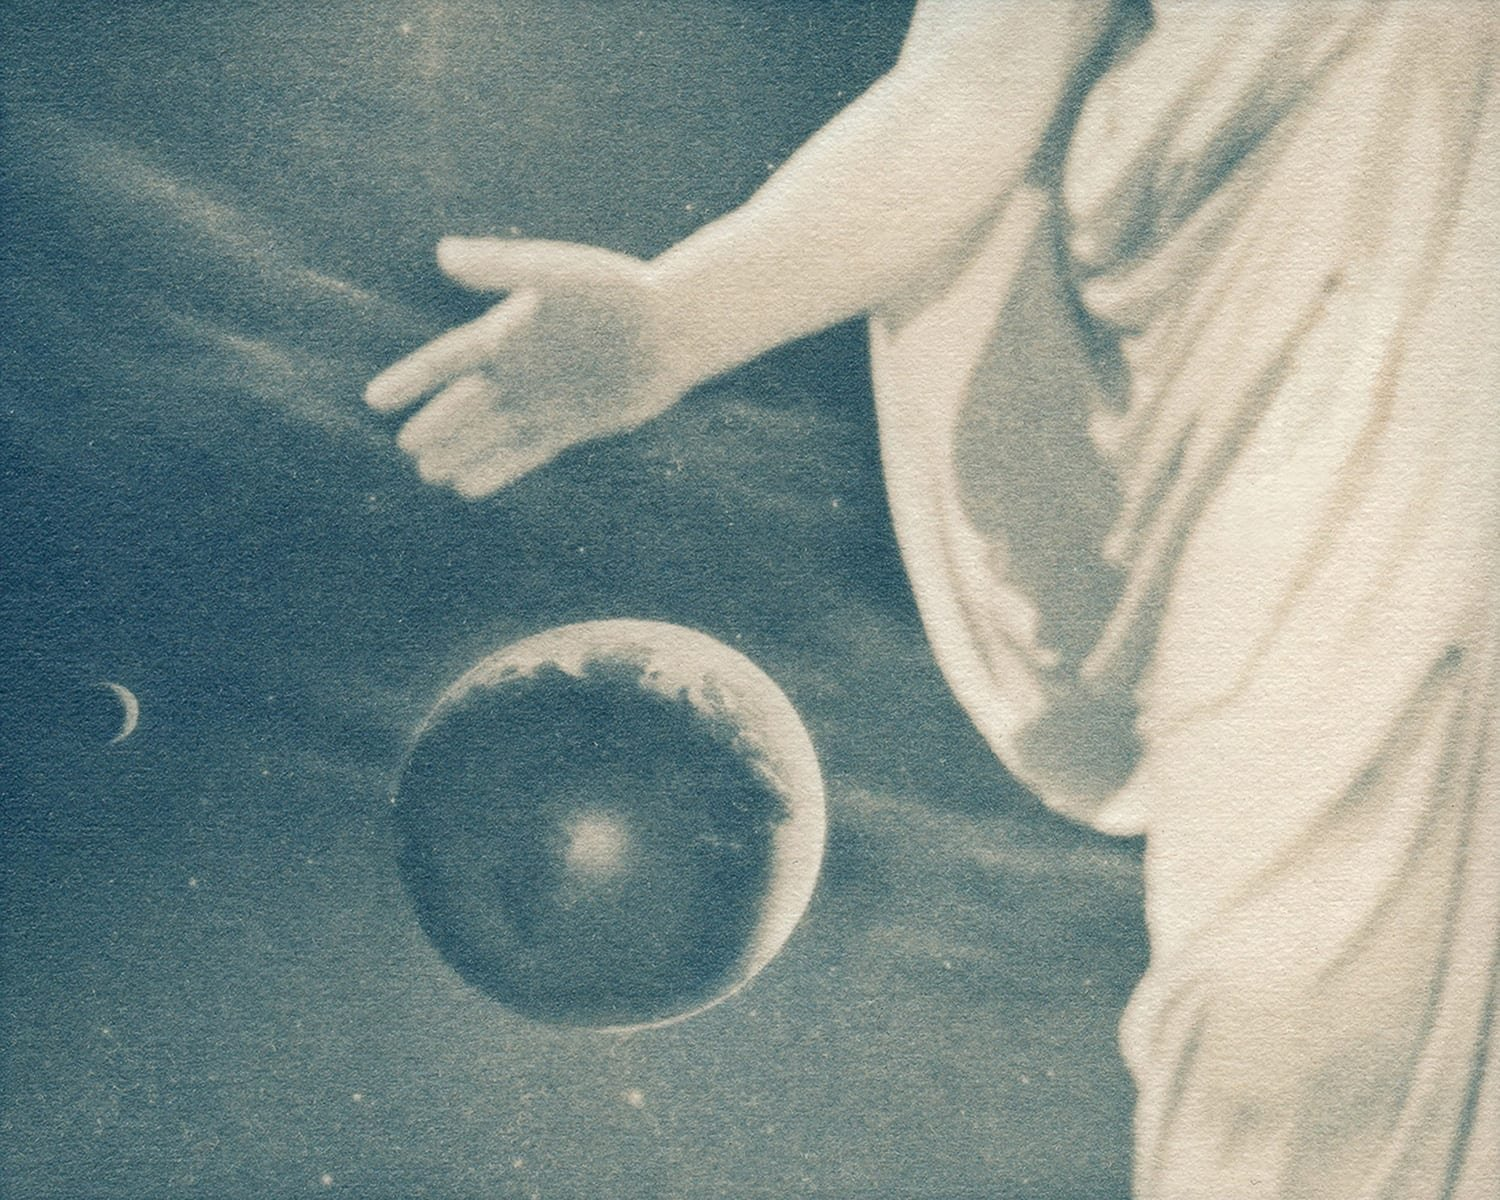 """Solitary,"" 2018. Gum Bichromate over Cyanotype"